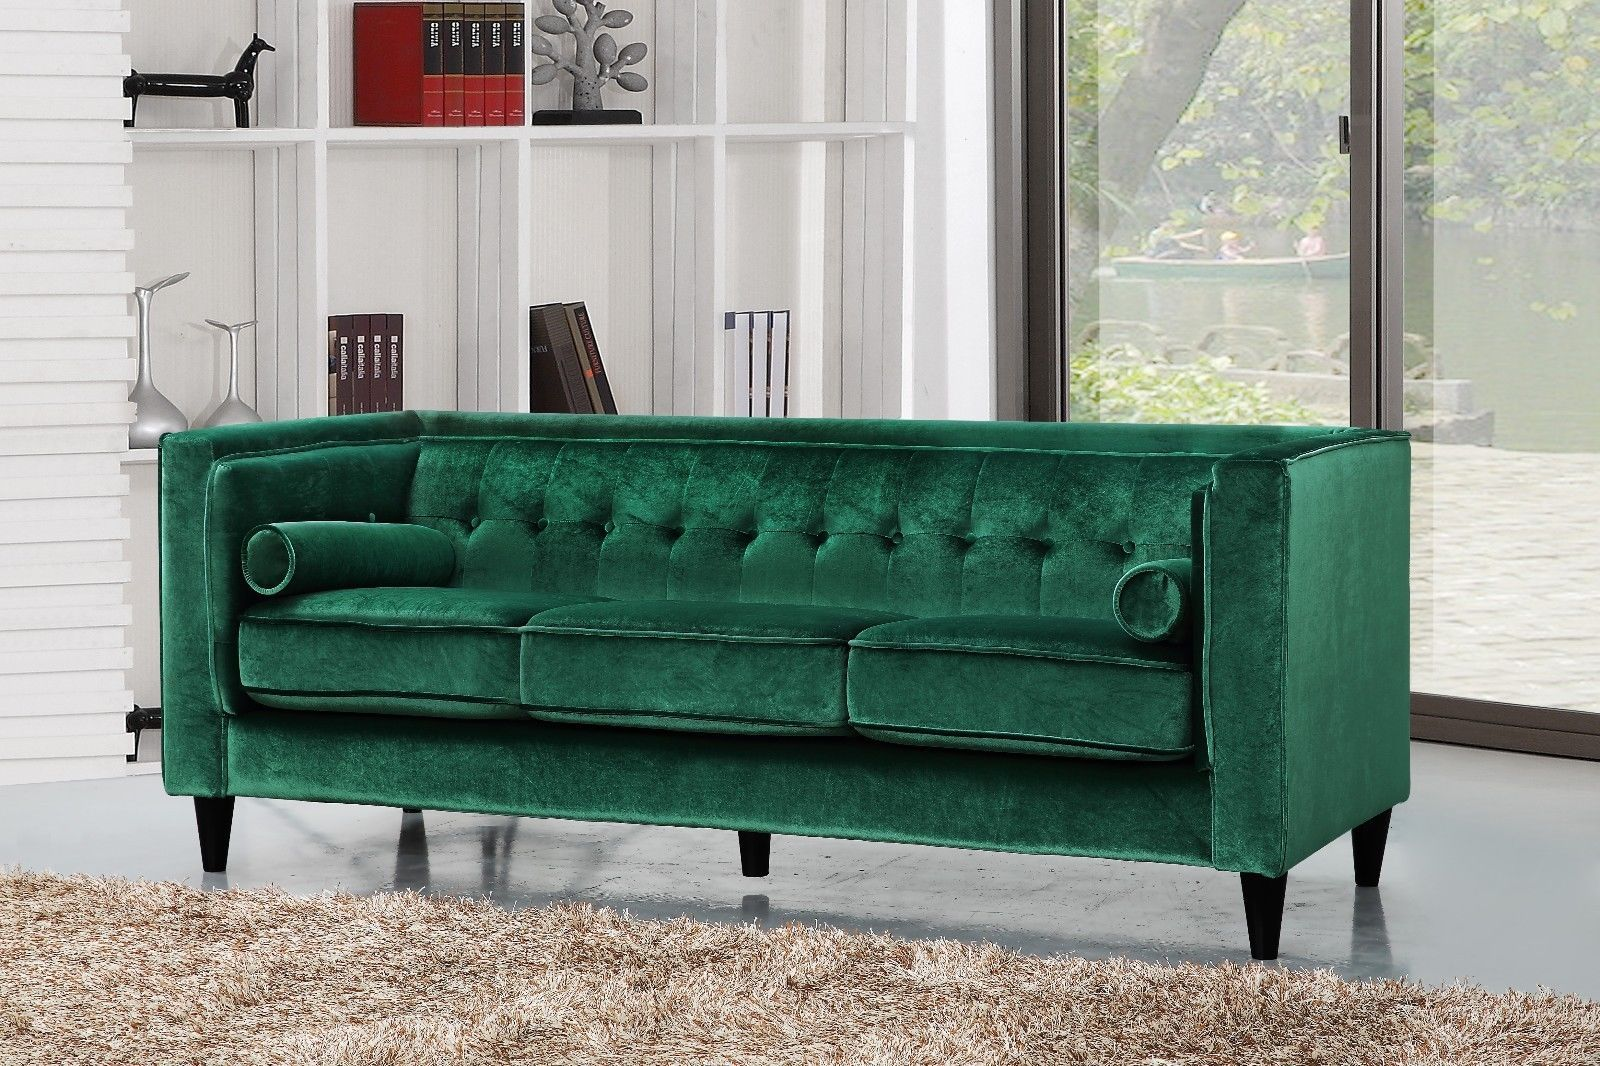 Meridian 642 Taylor Living Room Set 2pcs in Green Velvet Contemporary Style